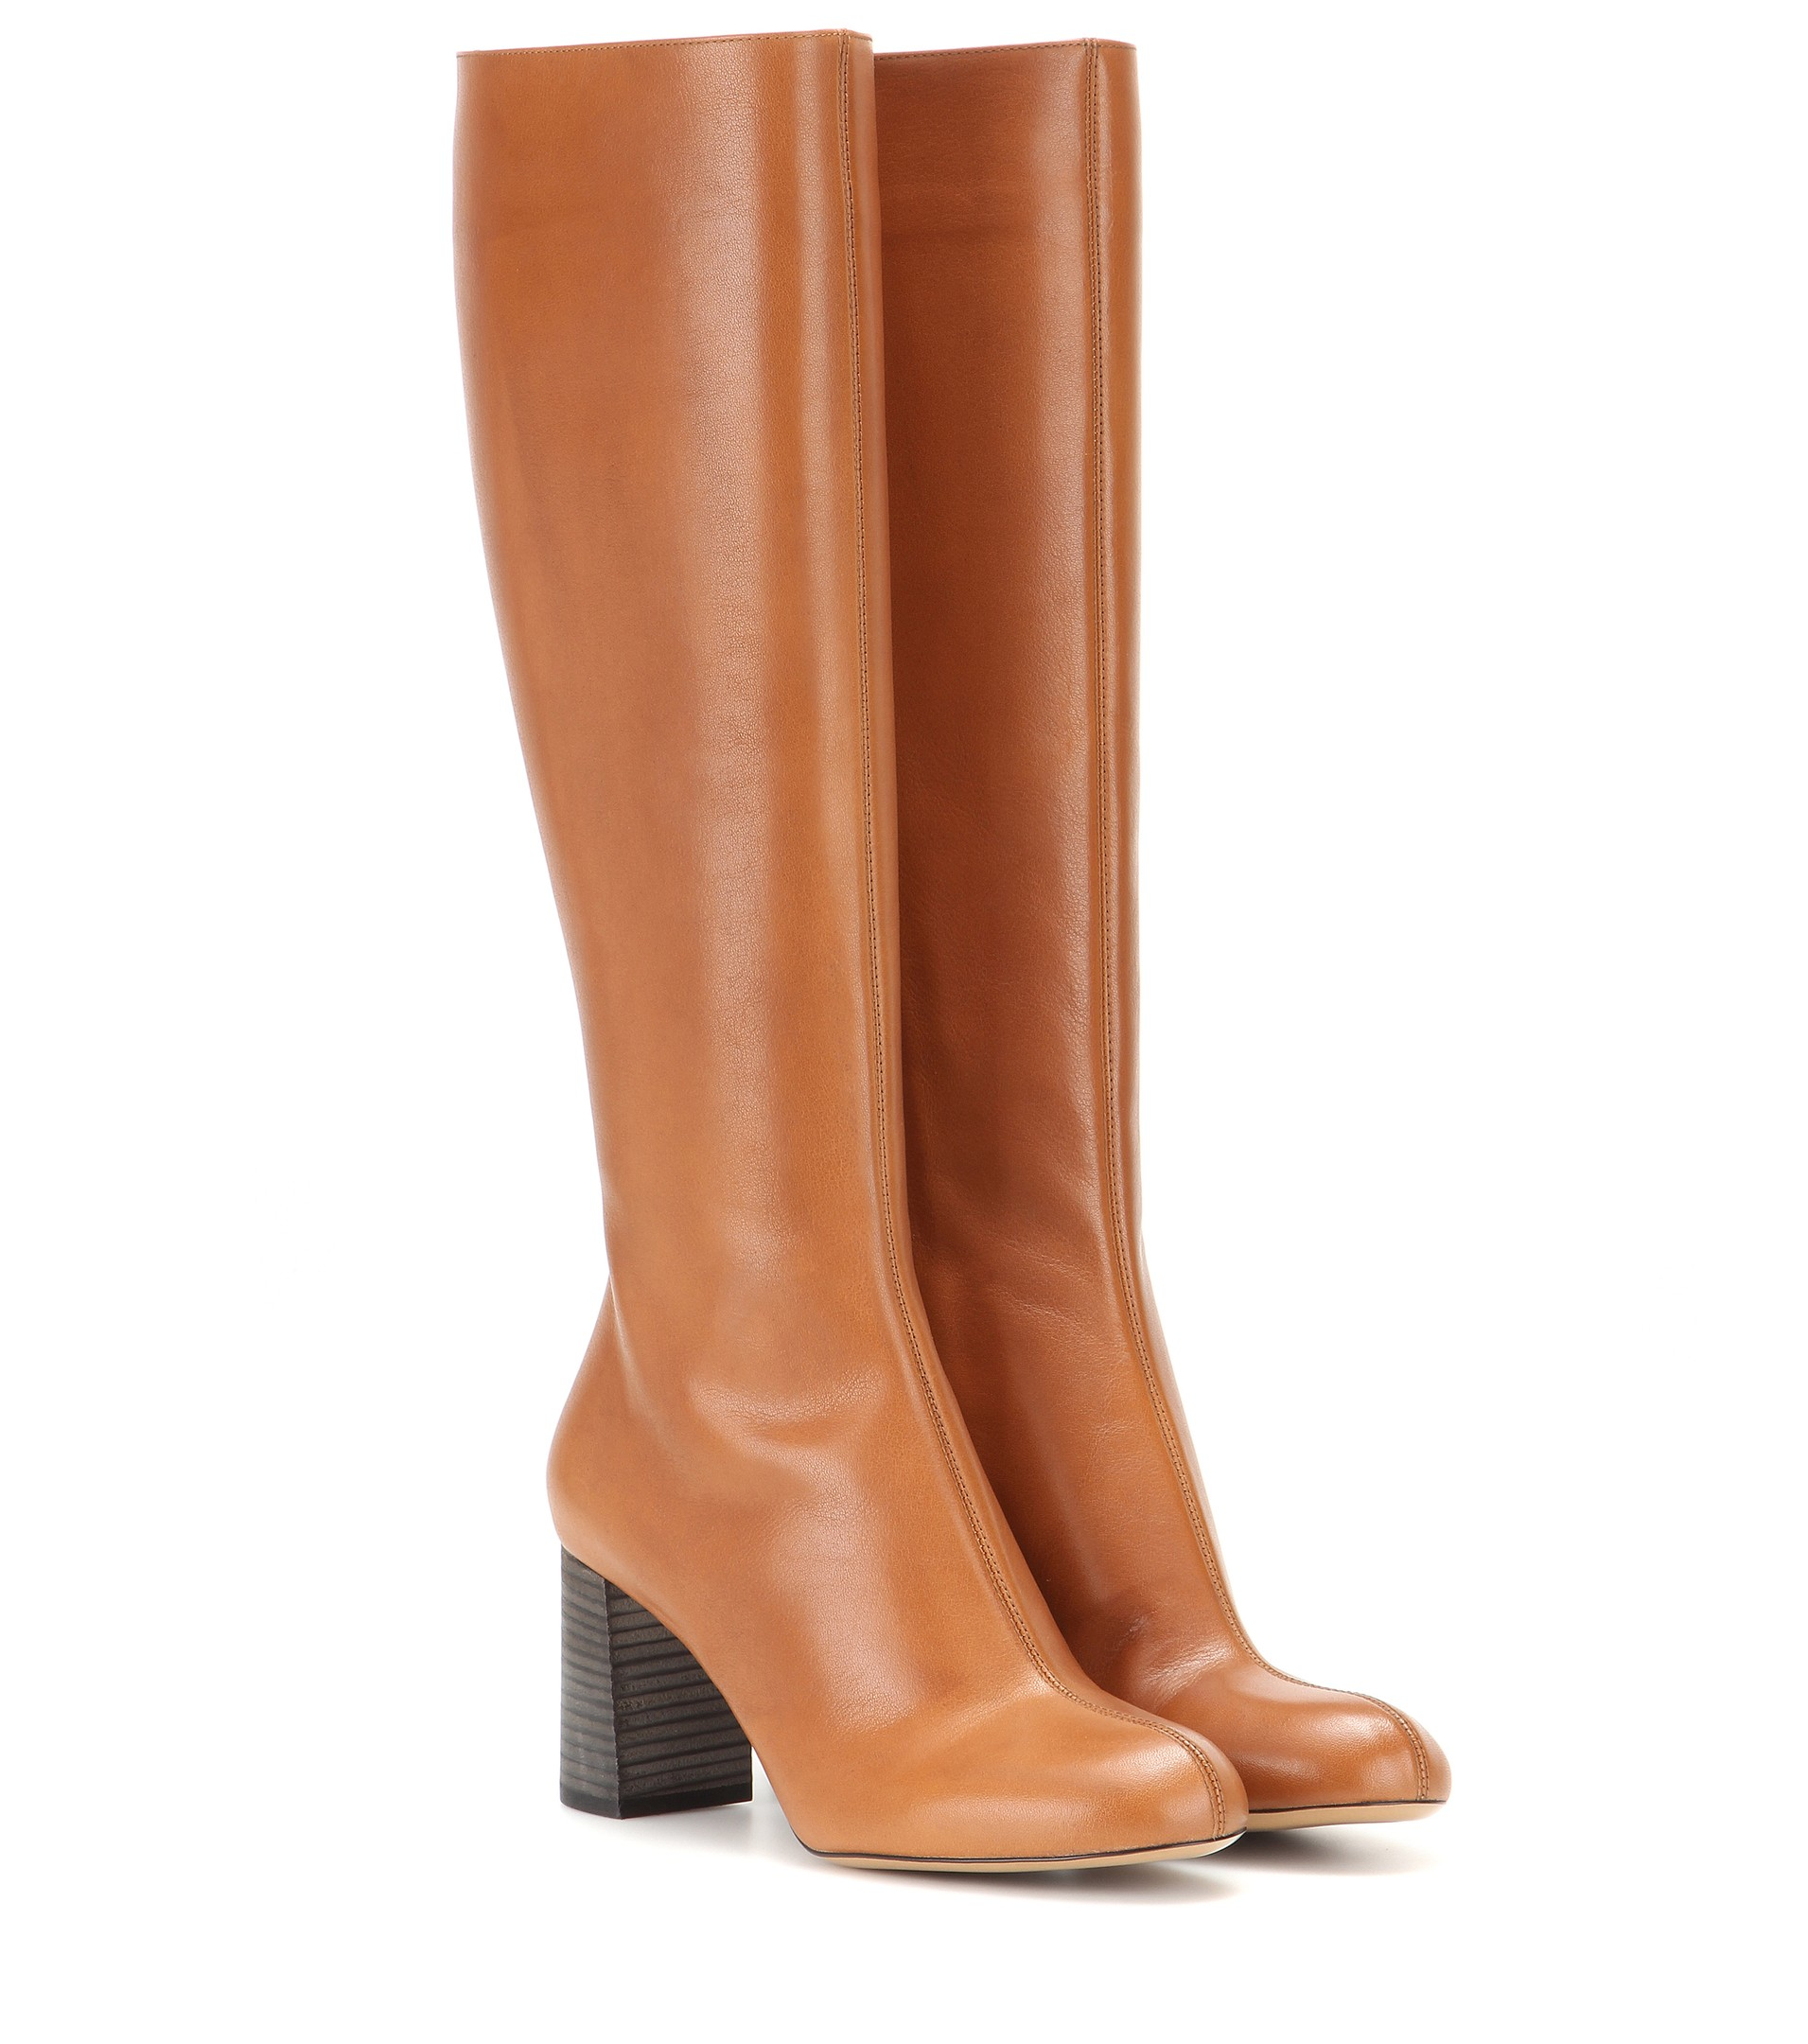 b0dd93c7de7 Chloé Leather Knee-High Boots in Brown - Lyst